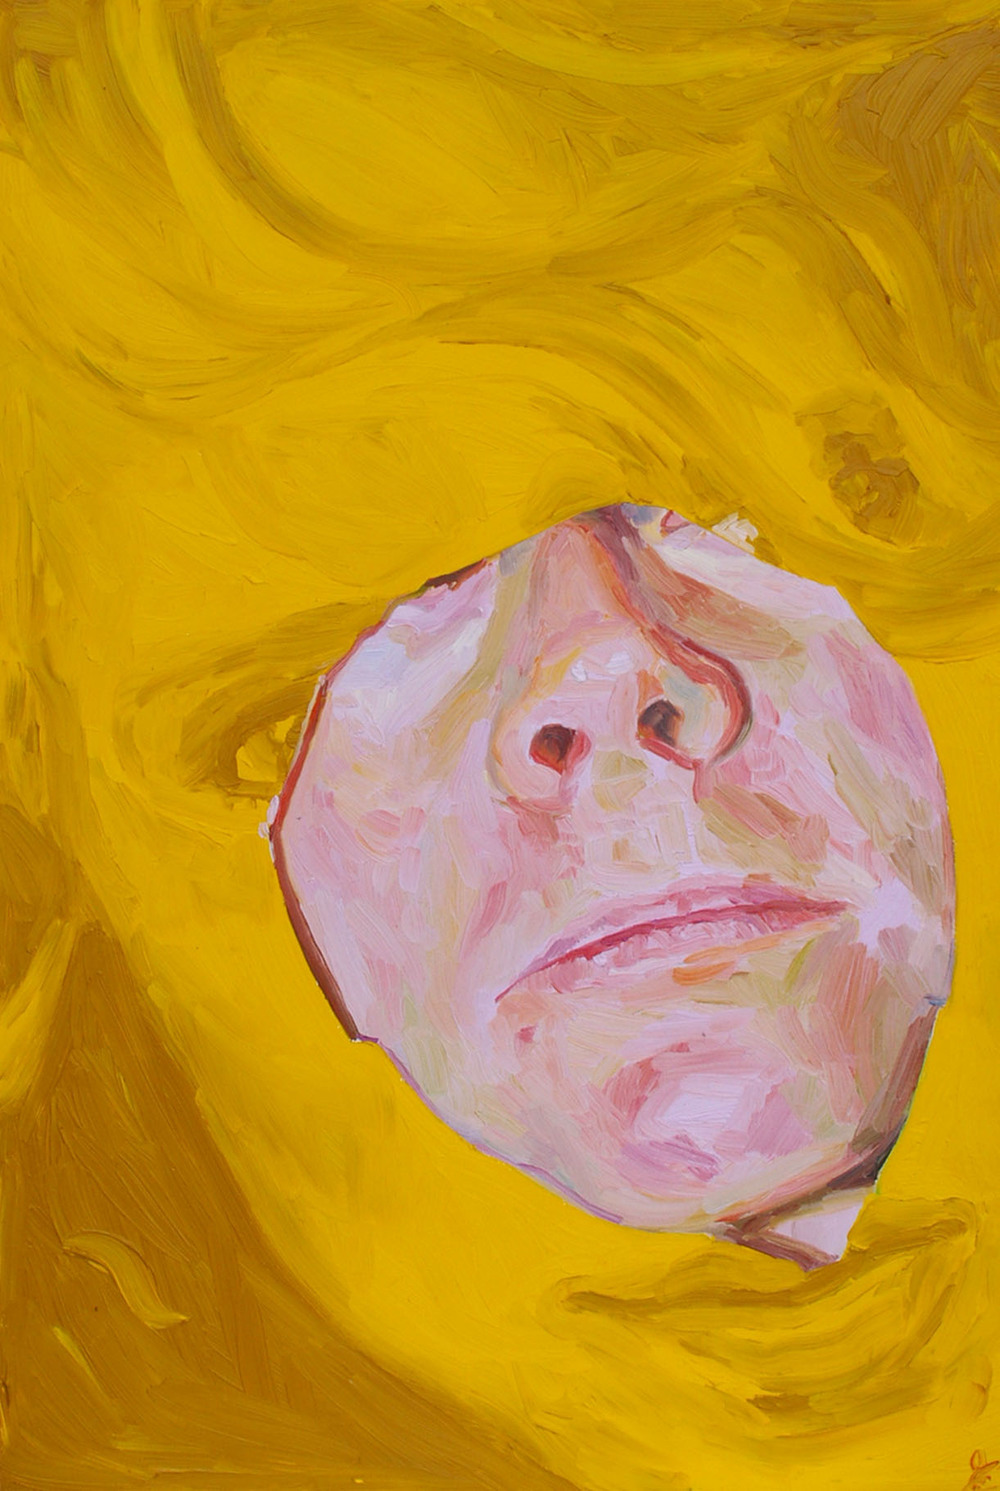 Self-Portrait in Cadium Yellow, oil on board, 60 x 40 cm, 2007.